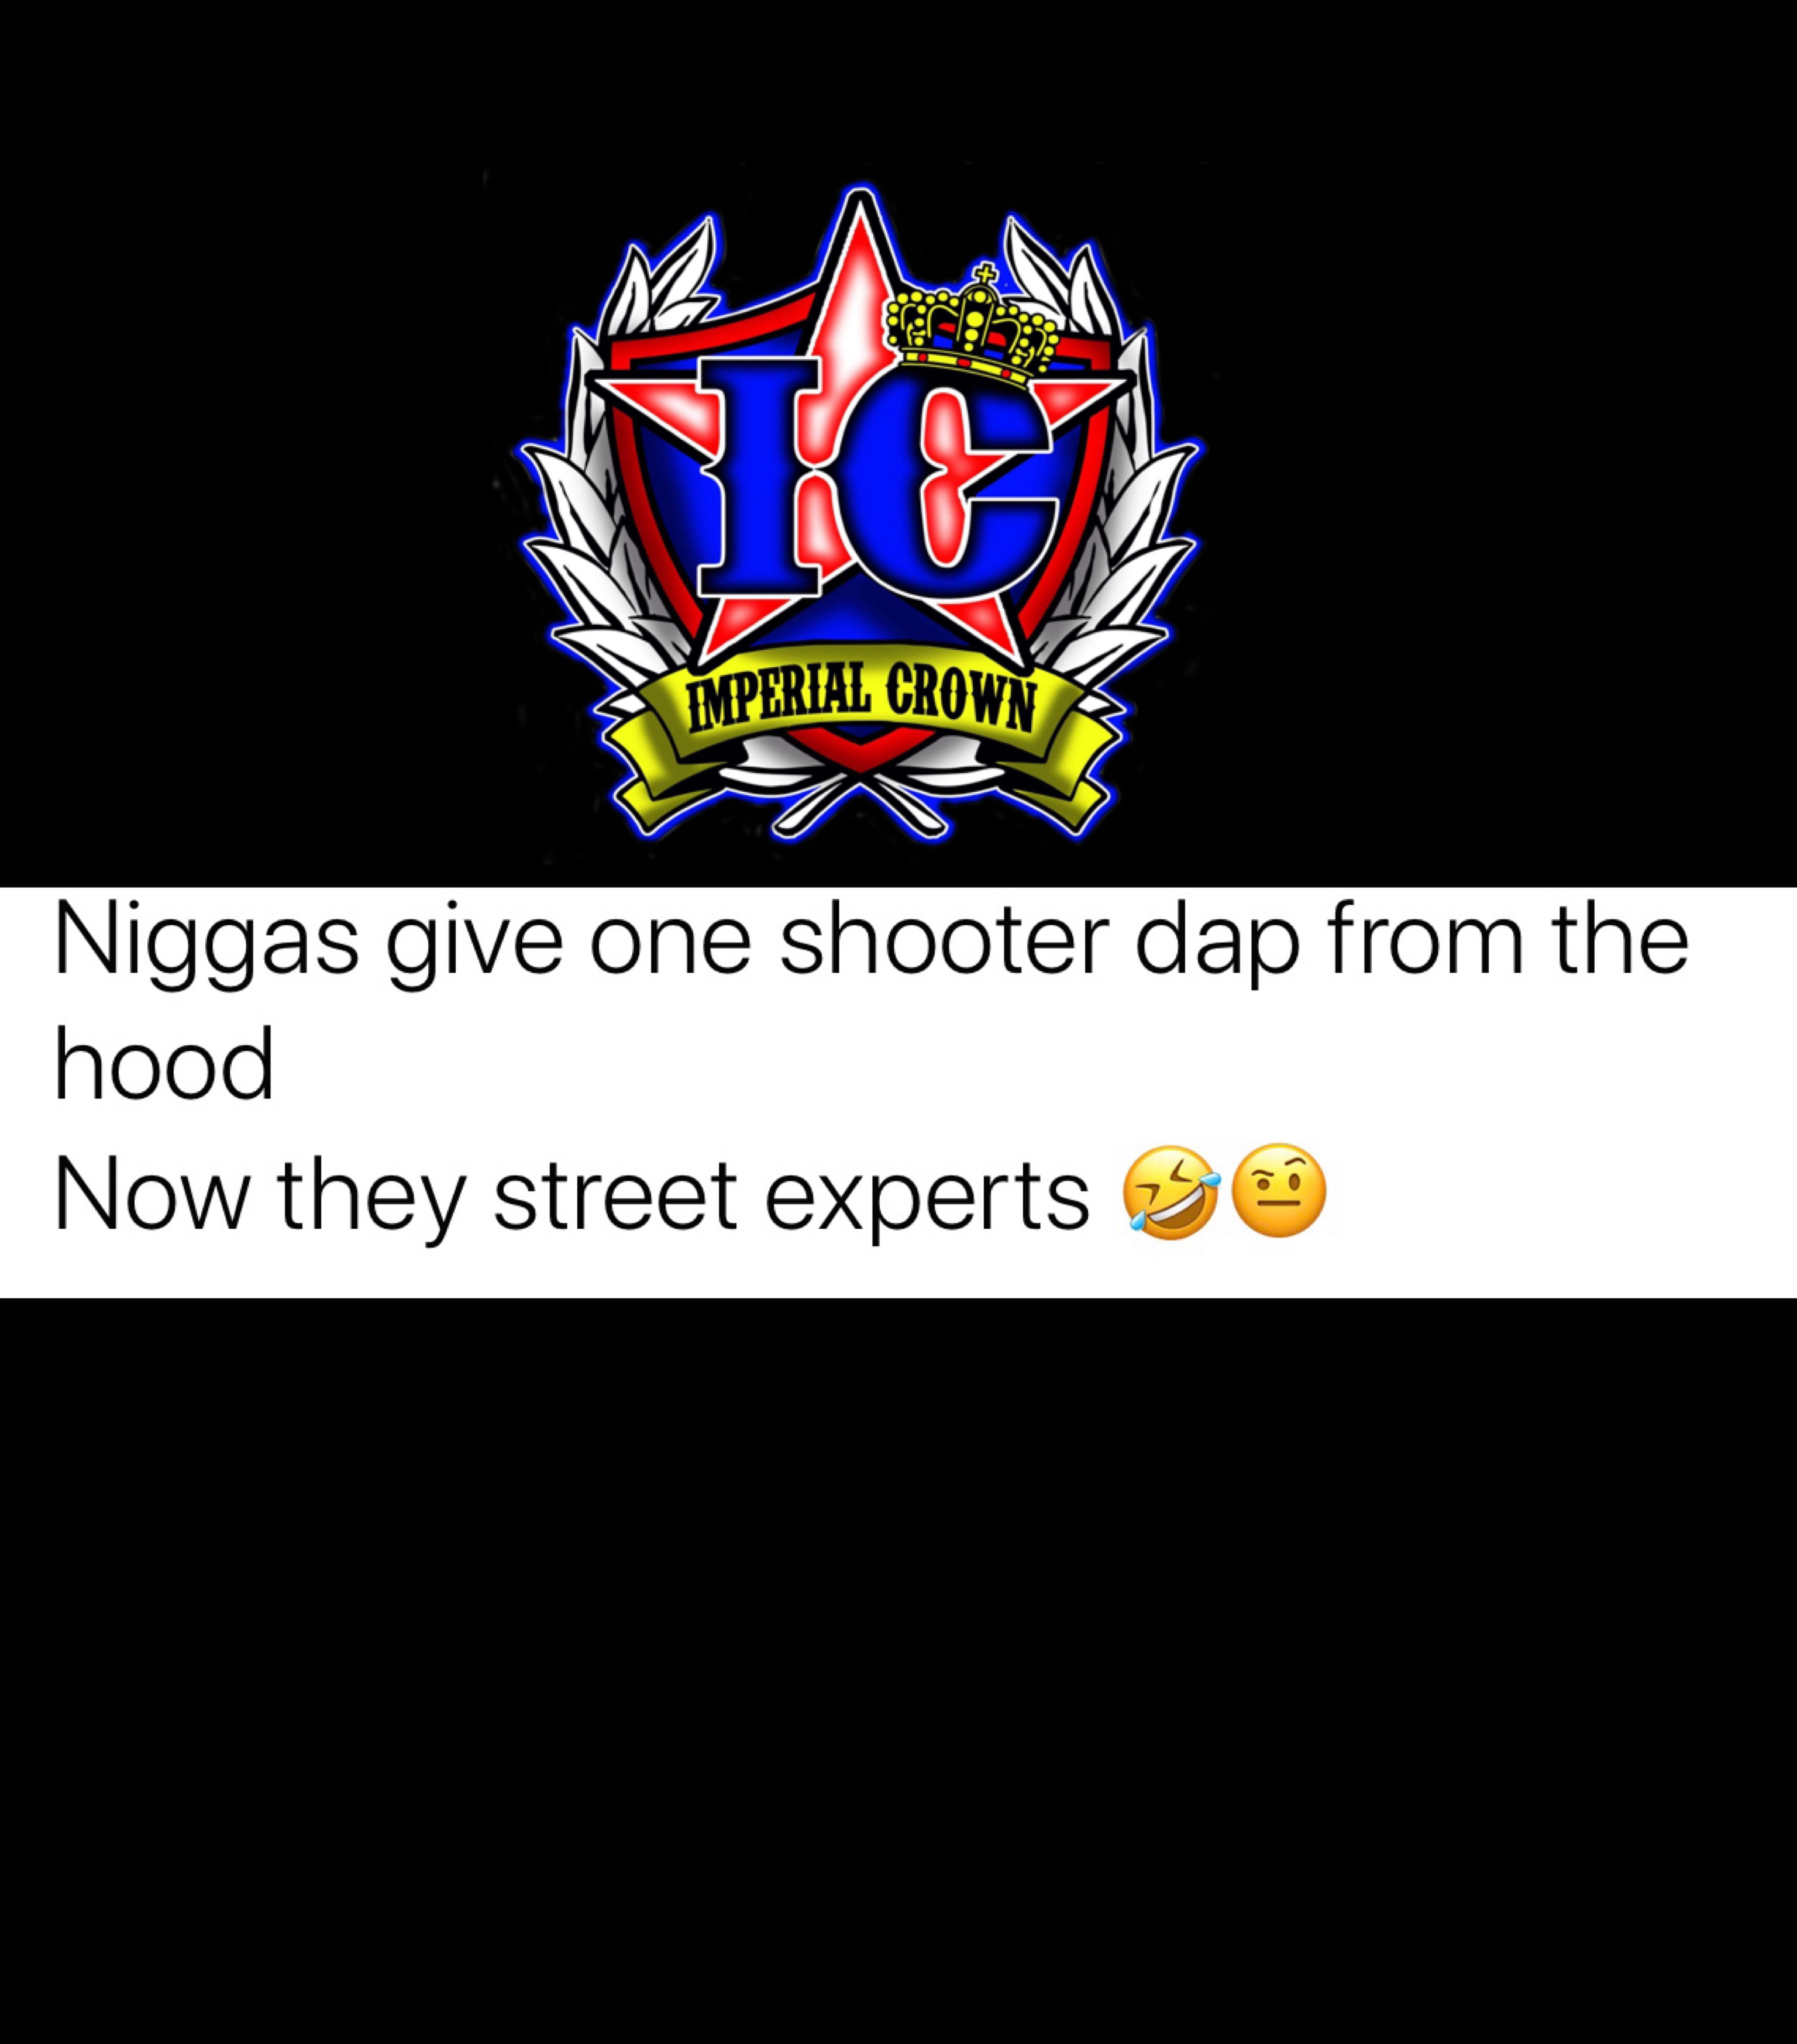 Niggas give one shooter dap from the hood now they street experts